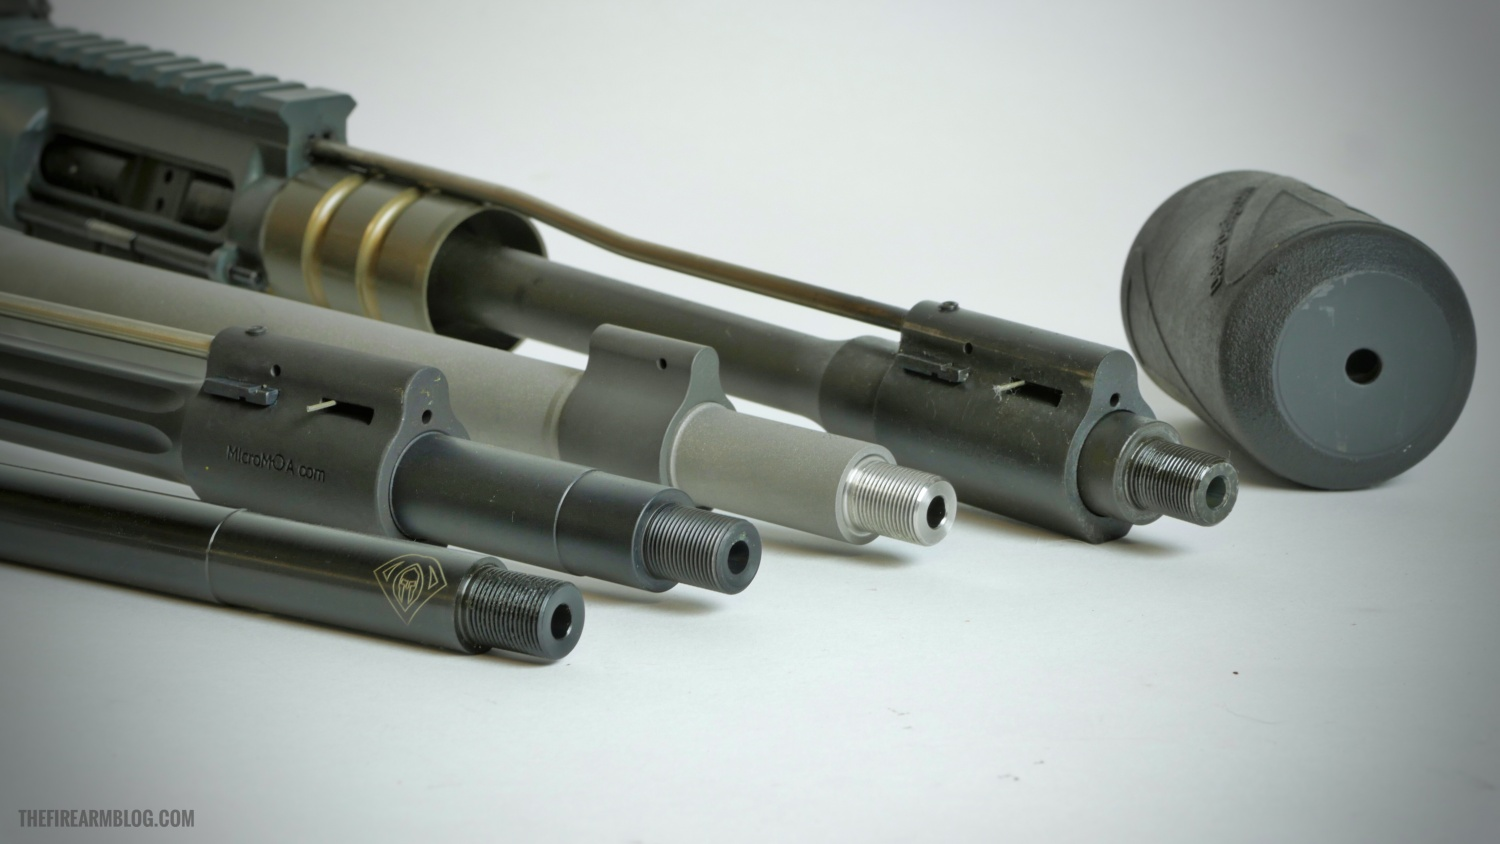 SILENCER SATURDAY #16: Gas Regulation And You -The Firearm Blog